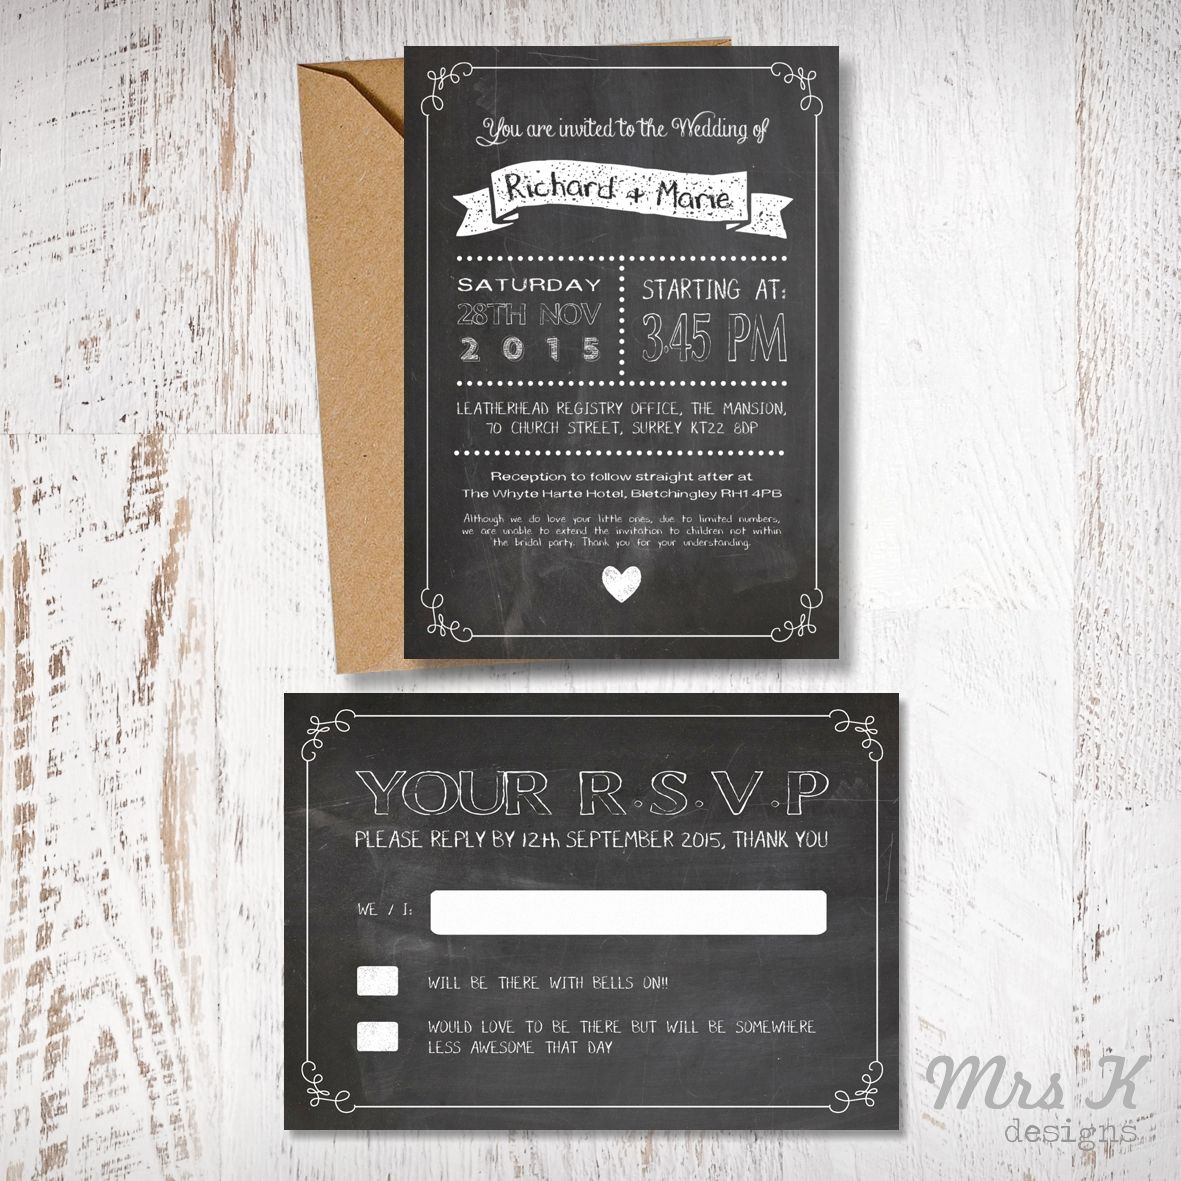 Chalkbarod Wedding Invitation & RSVP